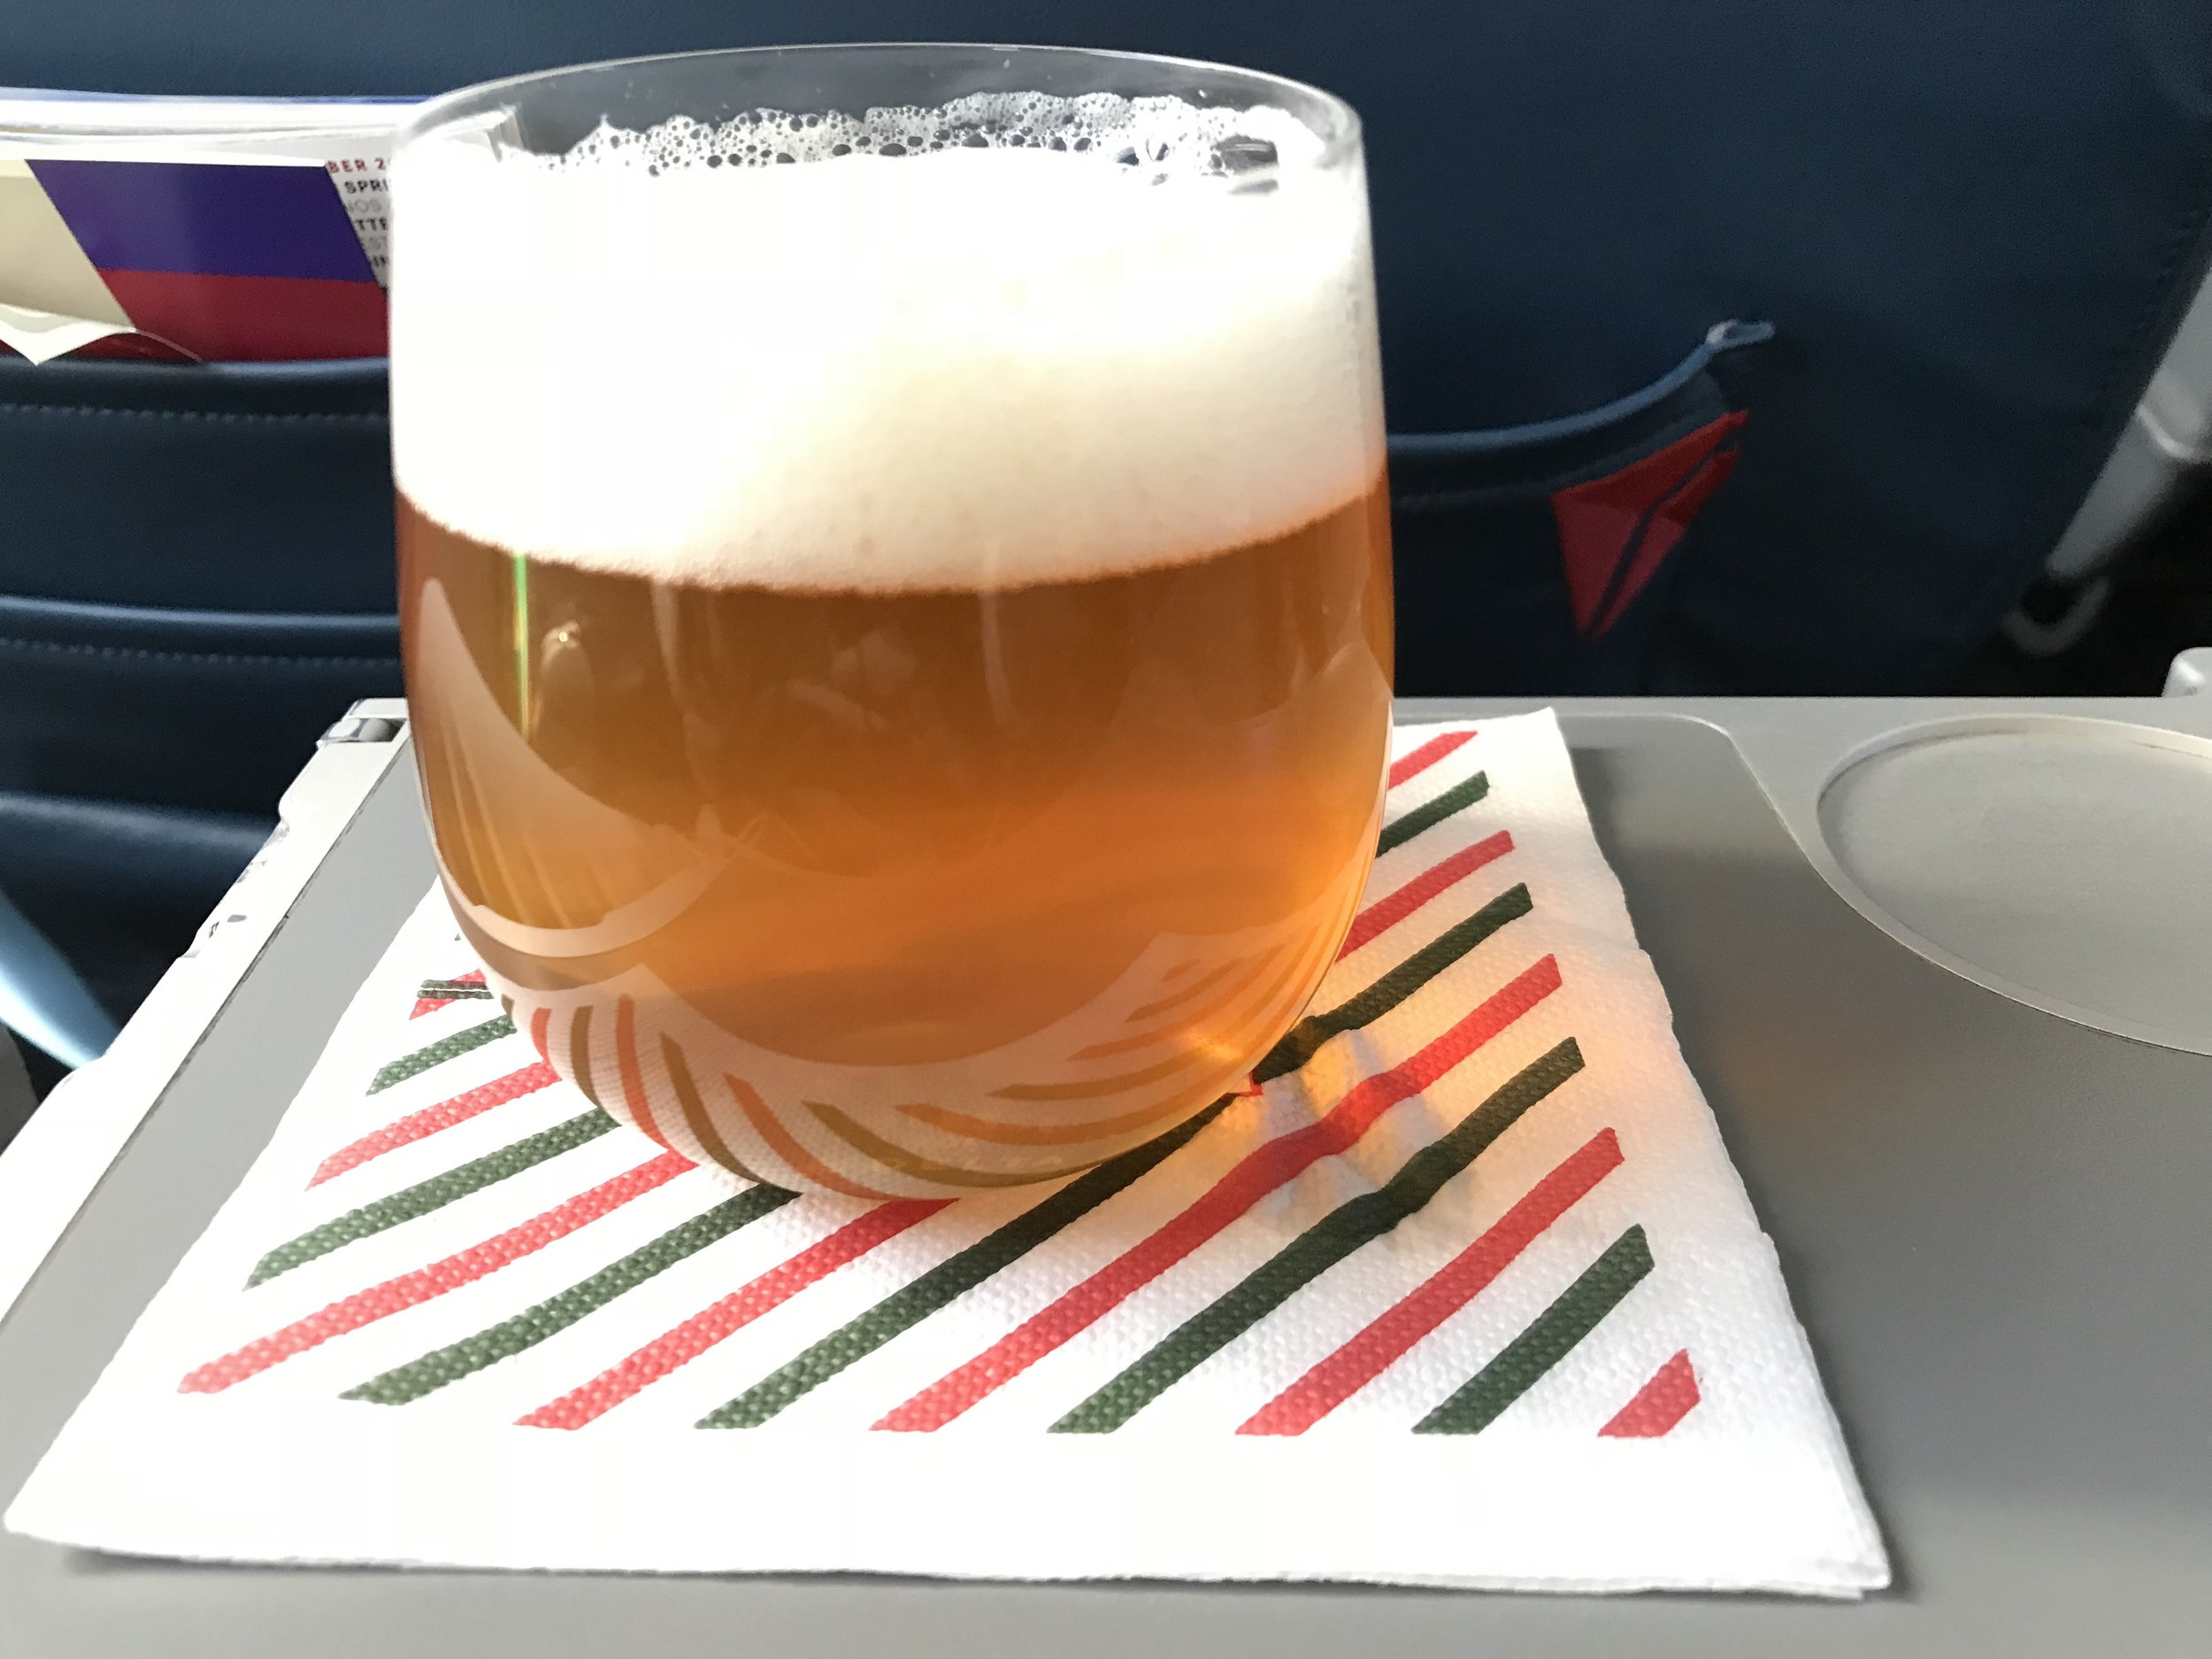 The tray table folds out of the right arm rest.